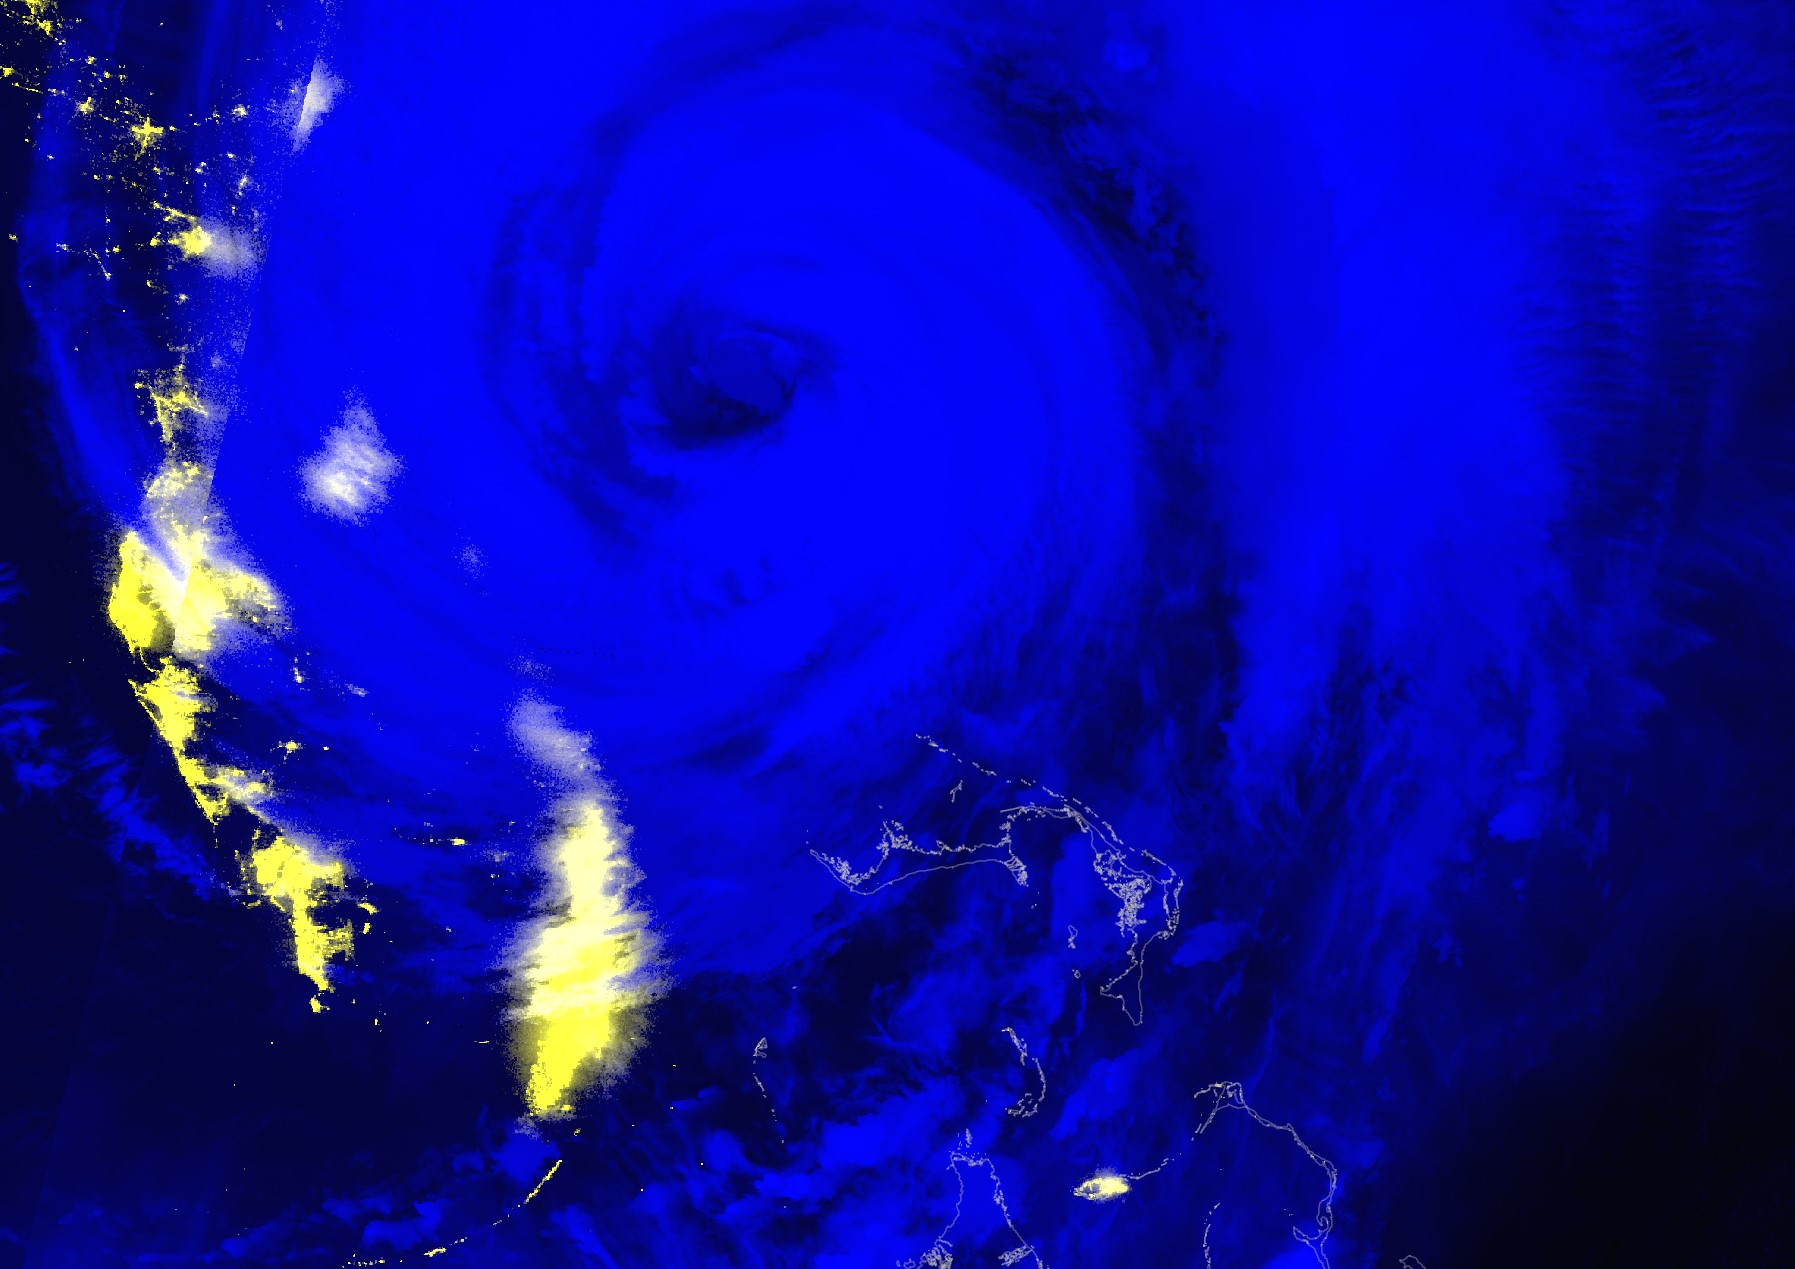 This Black Marble Nighttime Blue/Yellow Composite image shows Hurricane Dorian just after it moved away from the Bahamas on September 4, 2019.